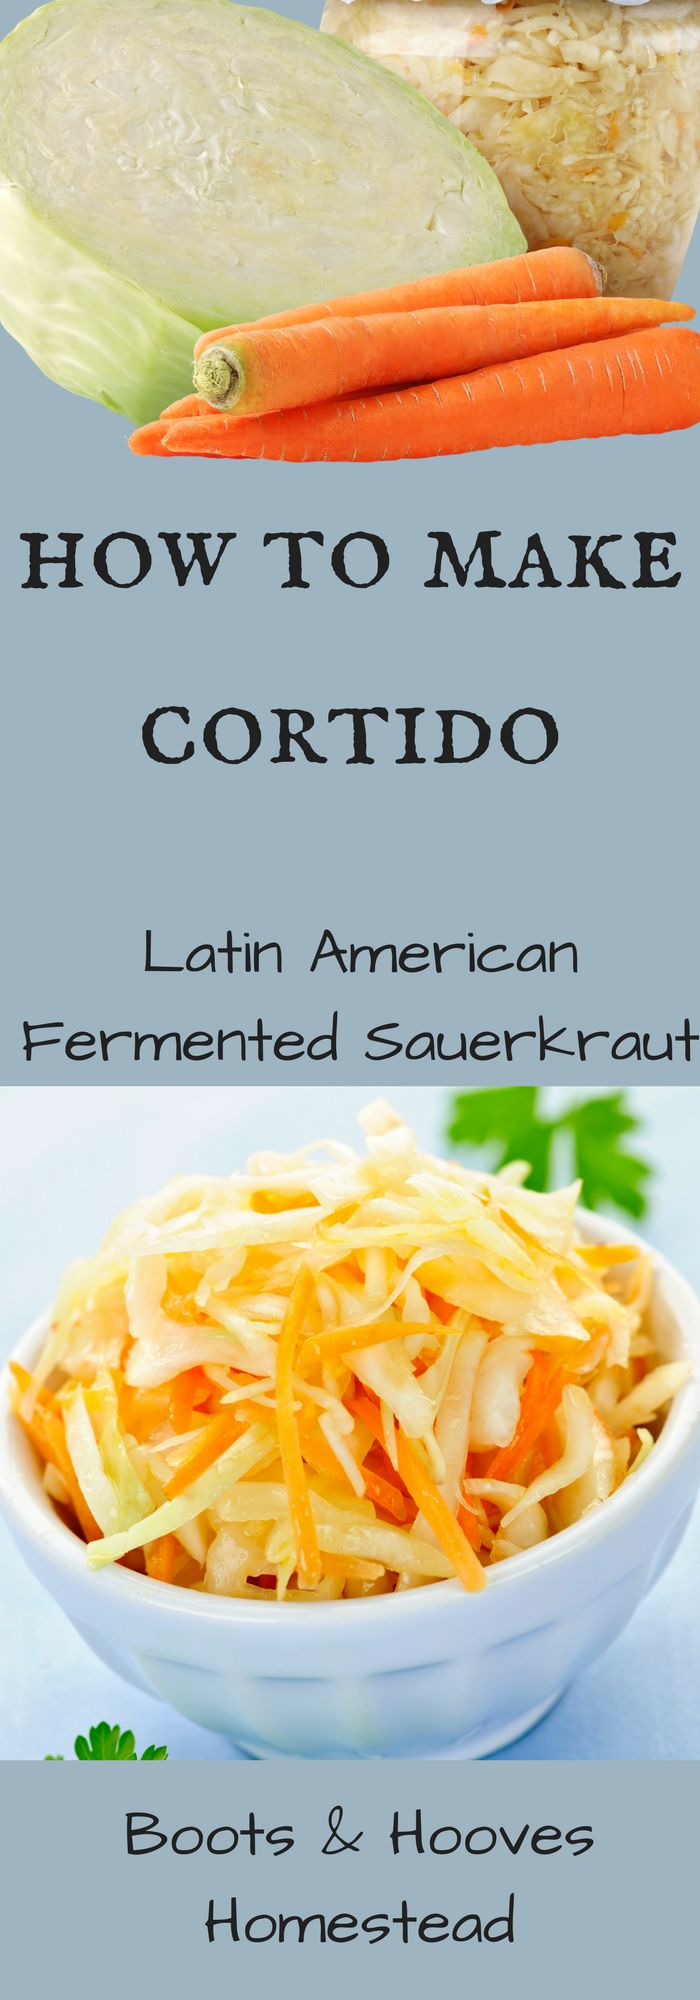 Fermentools Review and a Cortido Recipe - Boots & Hooves Homestead